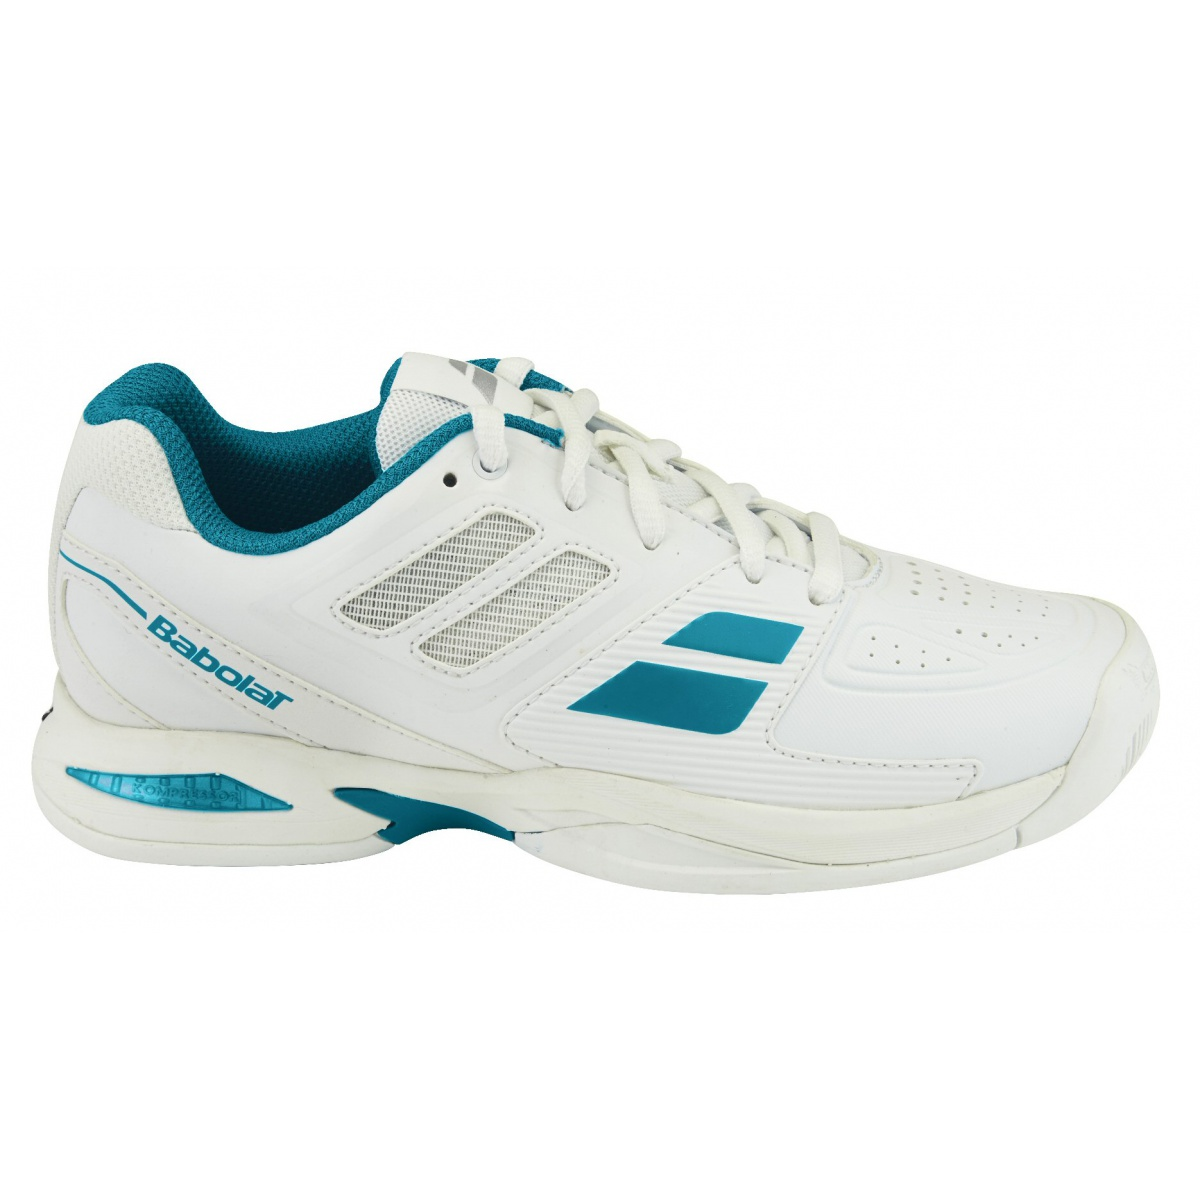 Propulse Team All Court Schuhe Kinder, WeiÃY, 31 Babolat